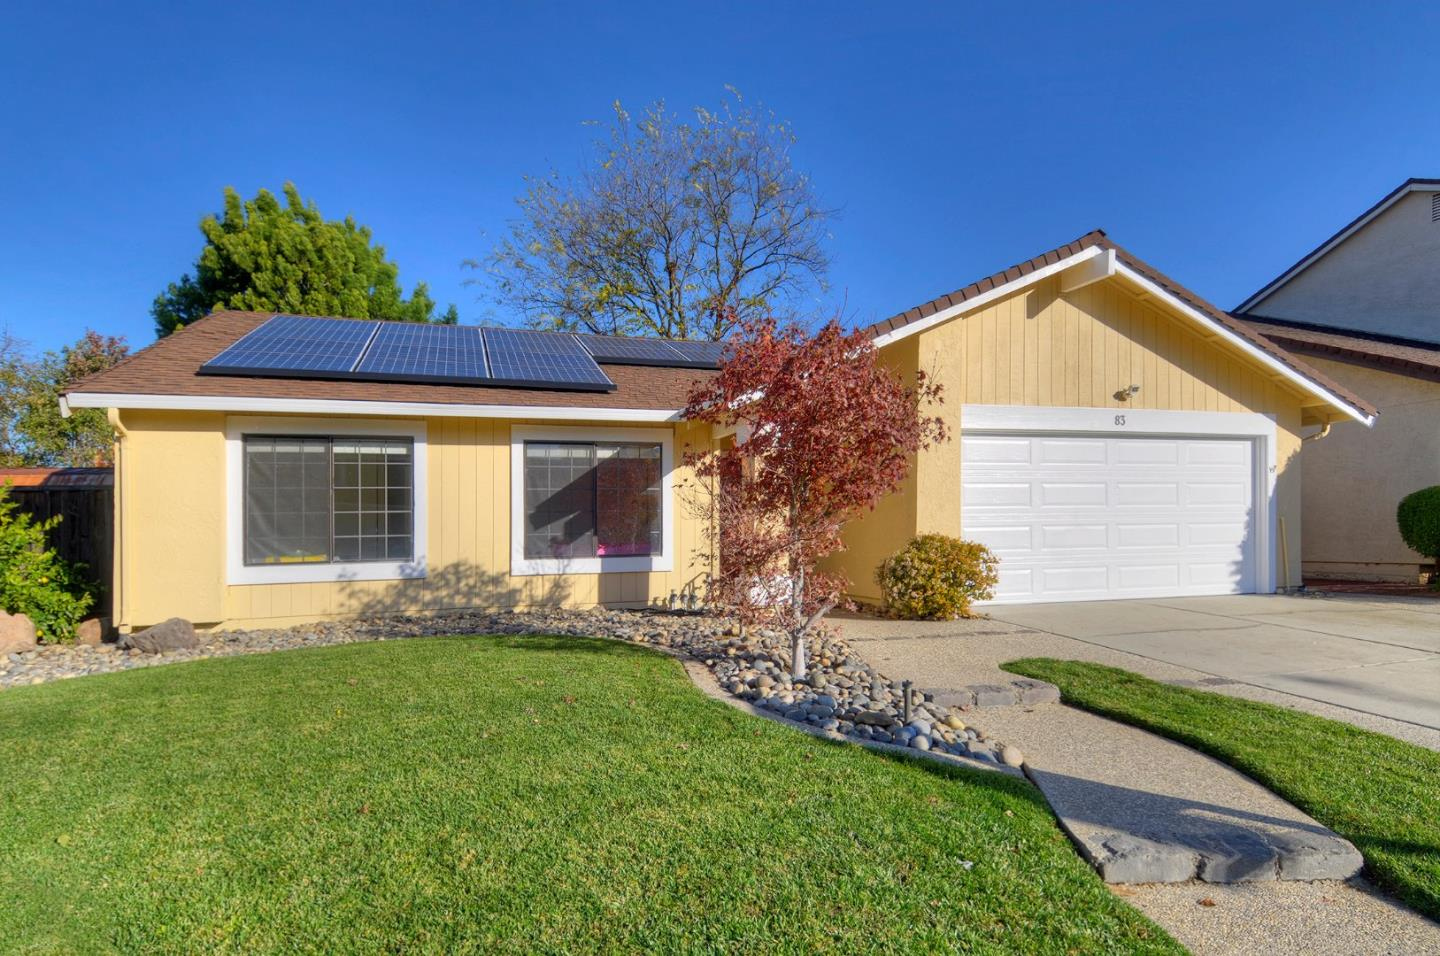 83 Rooster Court San Jose, CA 95136